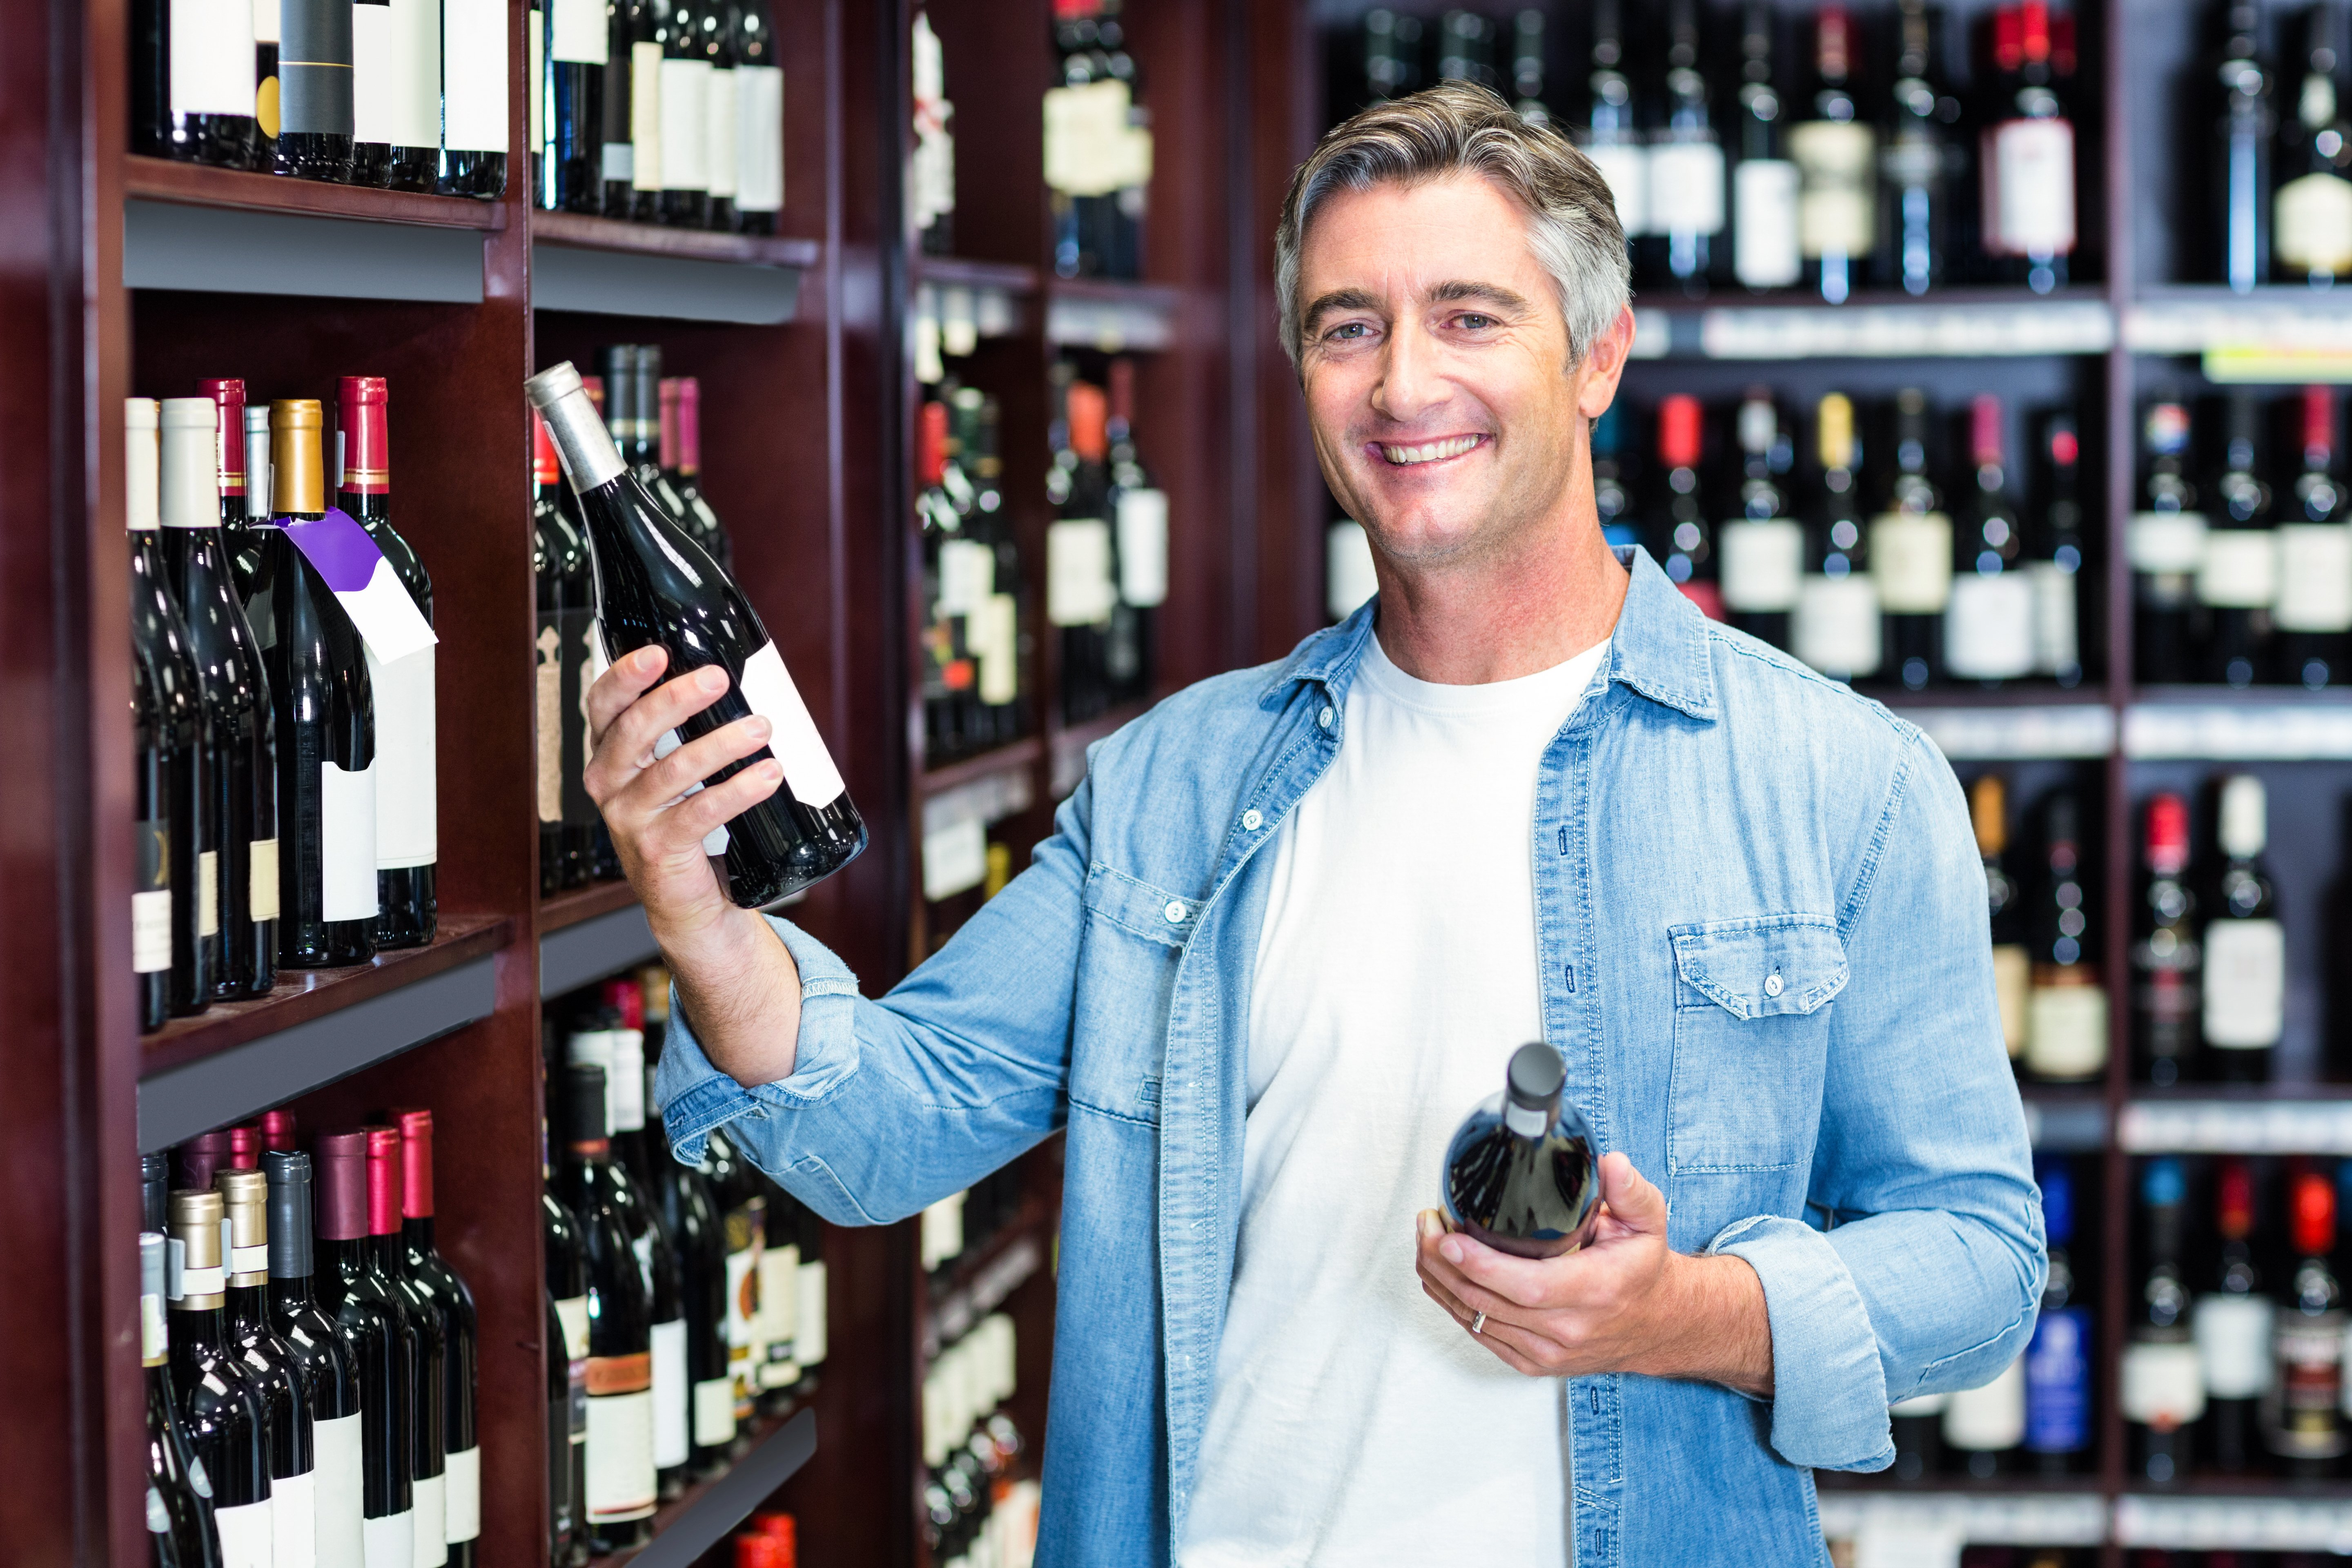 Smiling man holding bottles of wine in supermarket